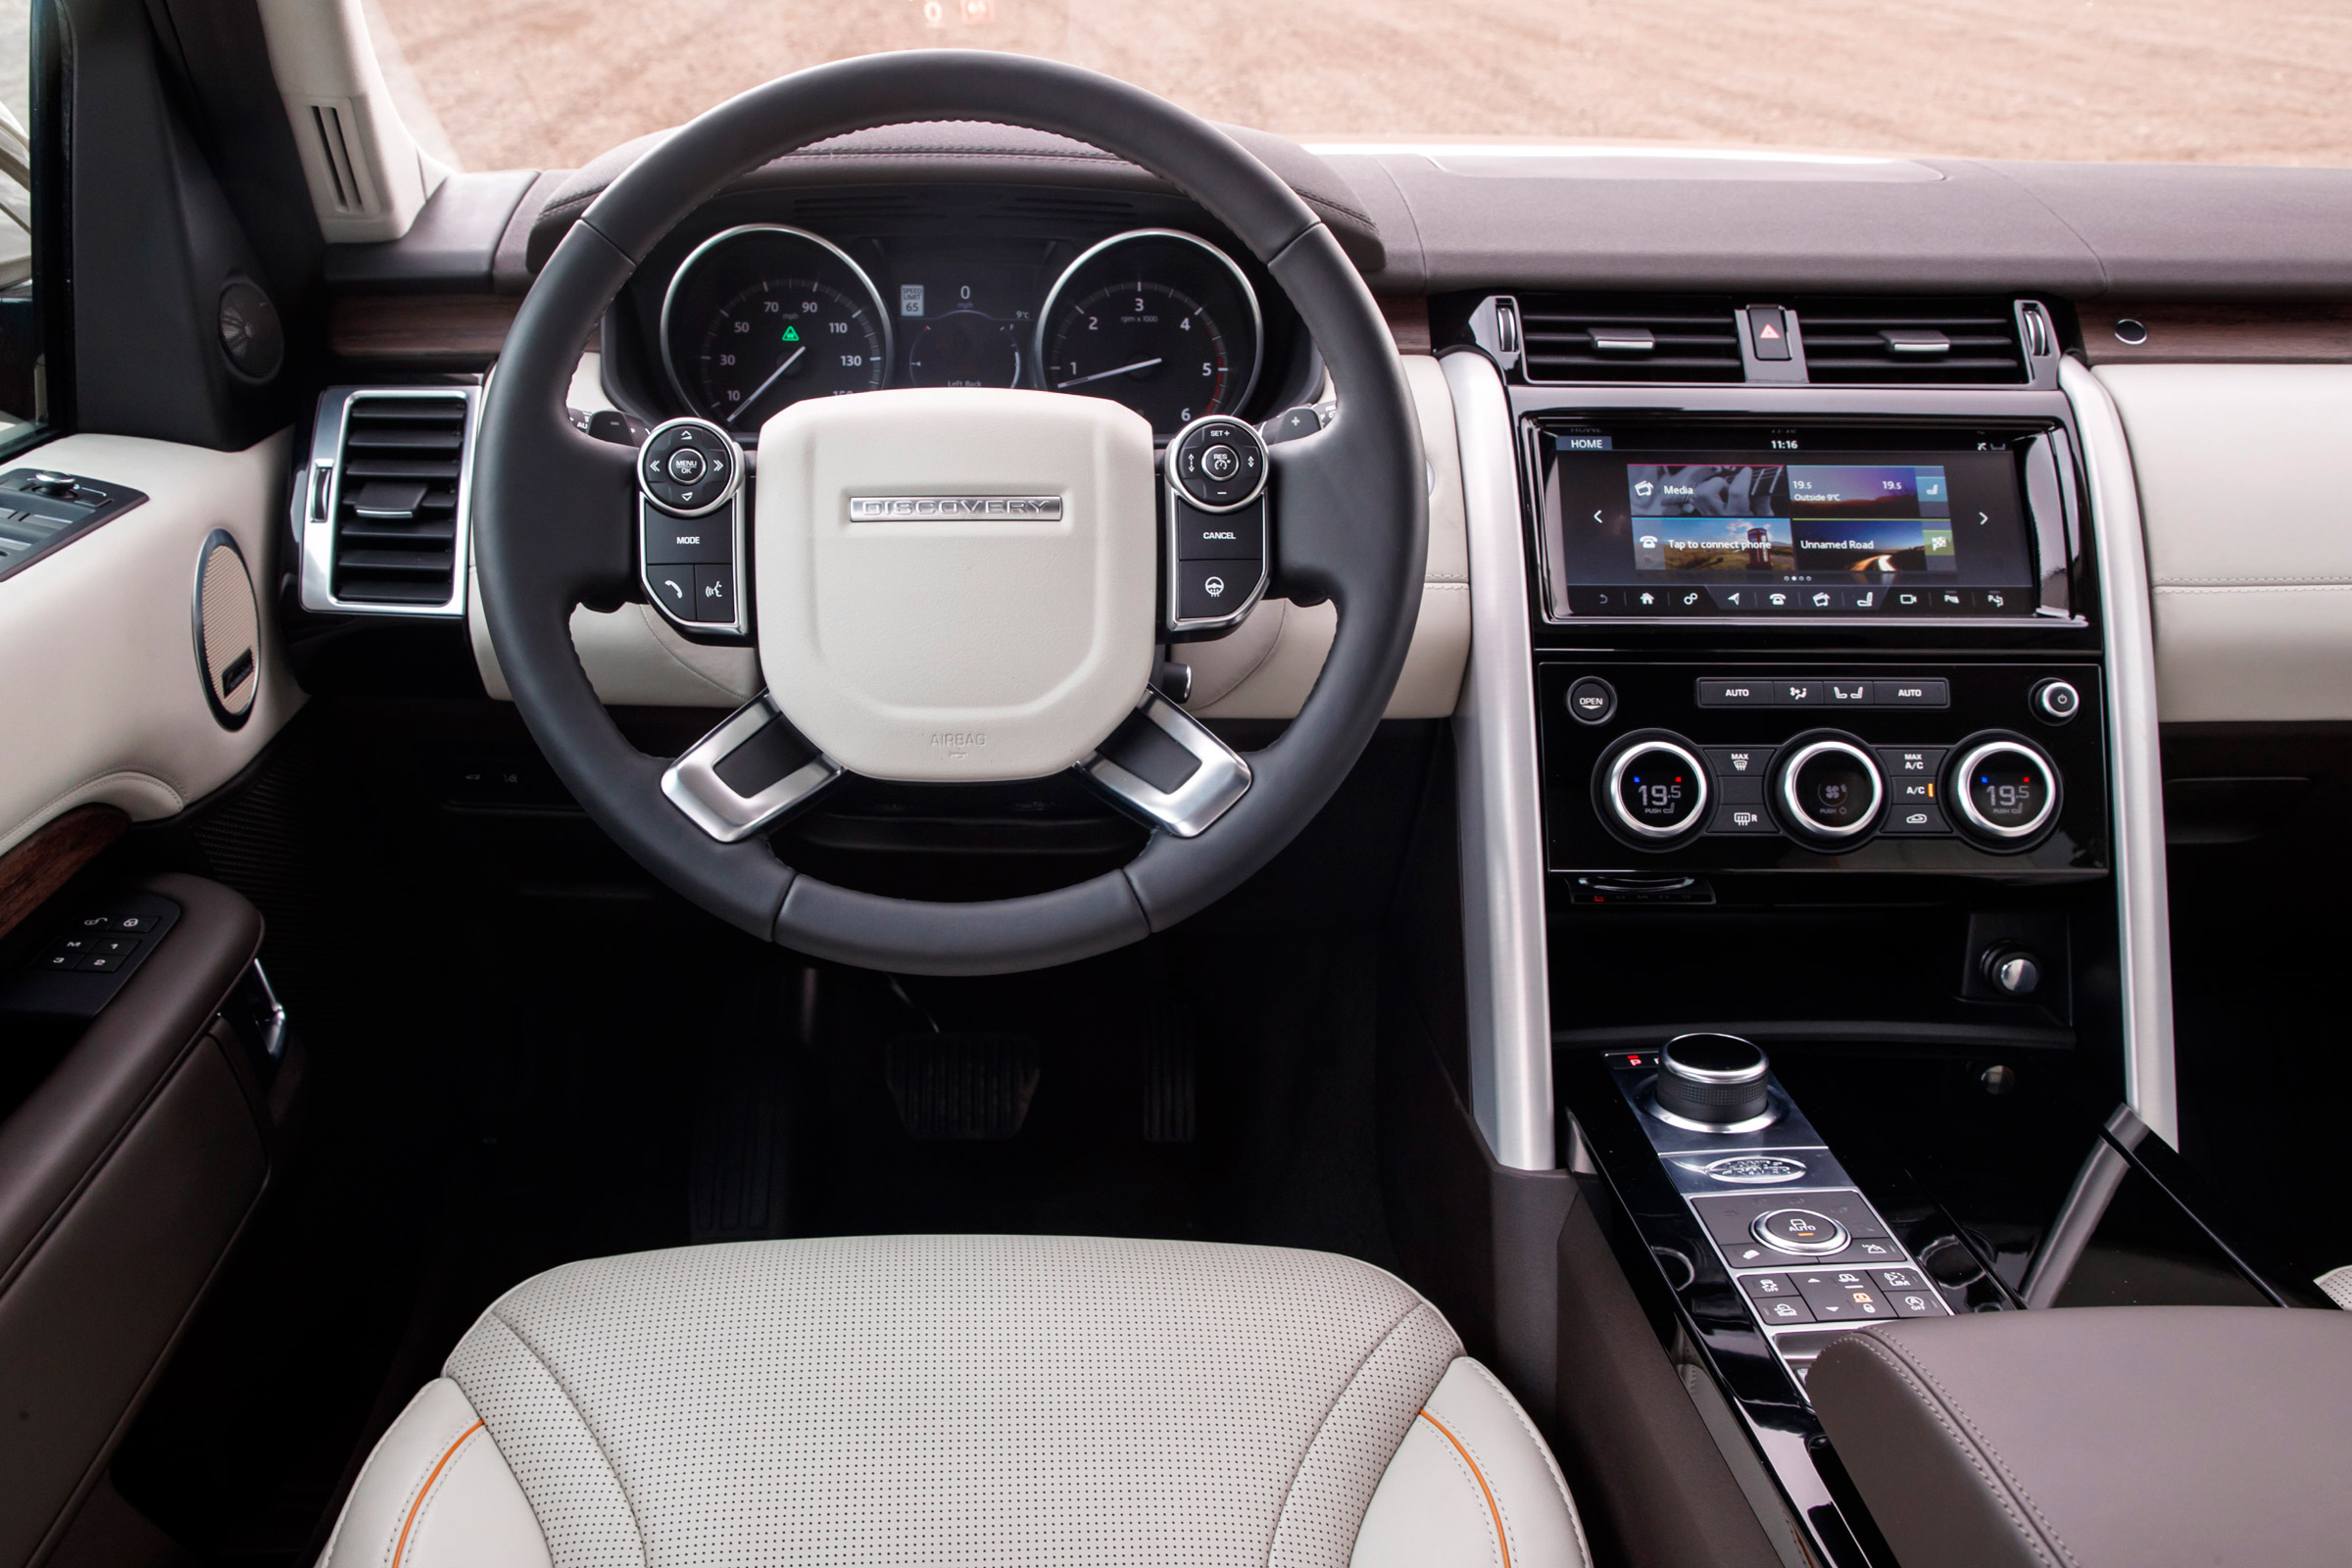 2017 Land Rover Discovery Interior Cockpit Steering And Dash (Photo 5 of 17)